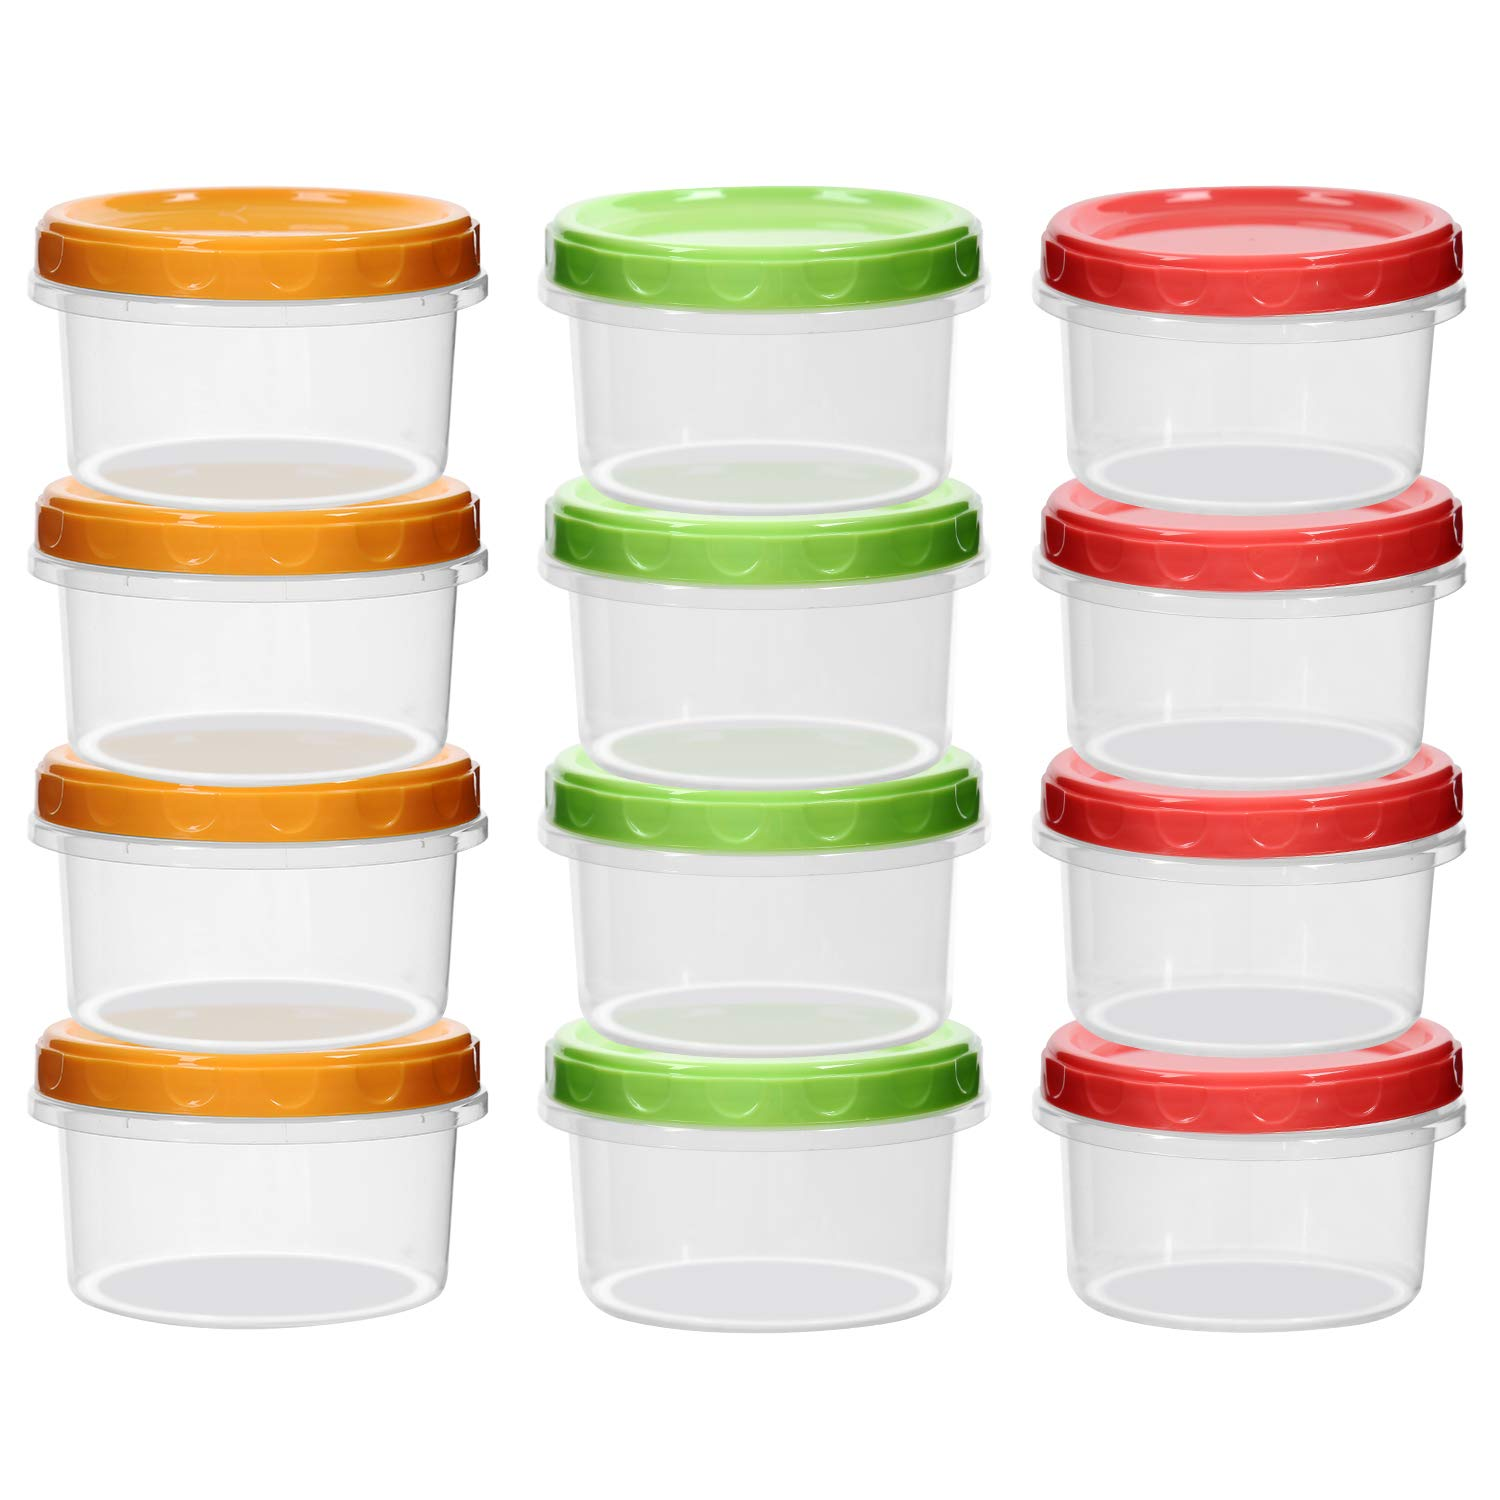 12-pack 8oz/250ml reuseable mini food fruit storage containers jars with screw lid |Sturd Plastic|BPA Free | Freezer & Dishwasher Safe|